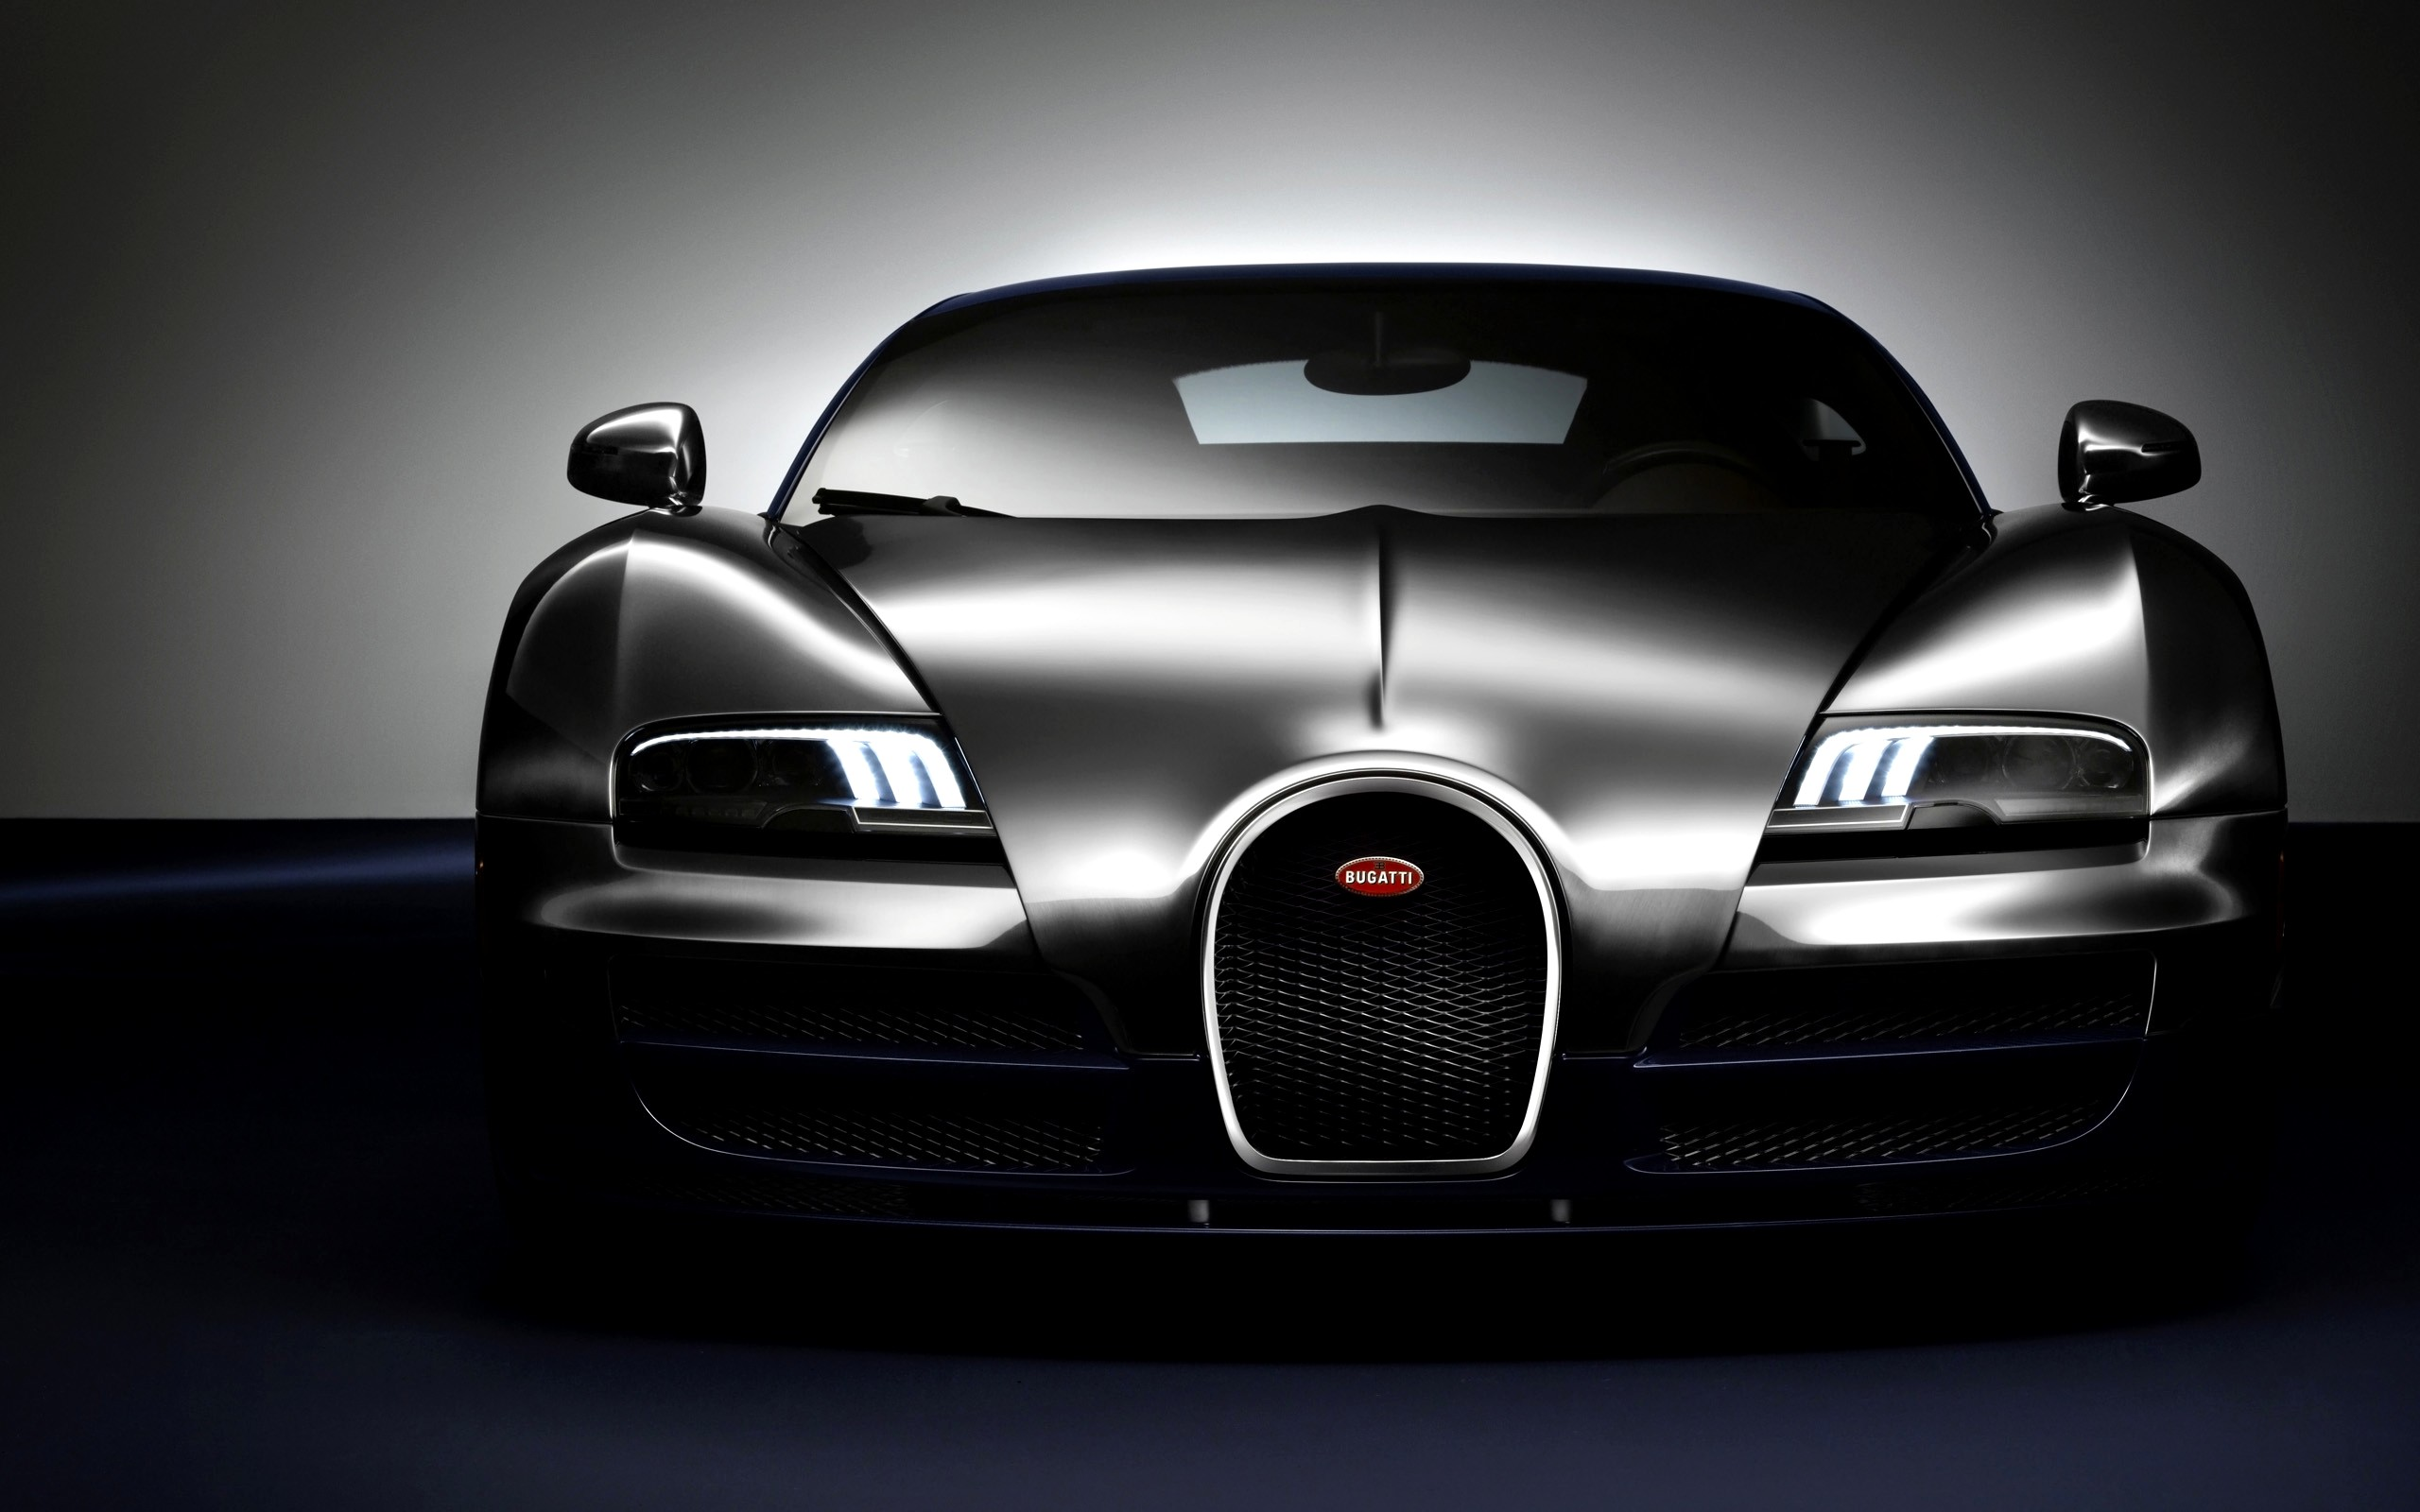 Bugatti Veyron Wallpapers HD Download 2560x1600